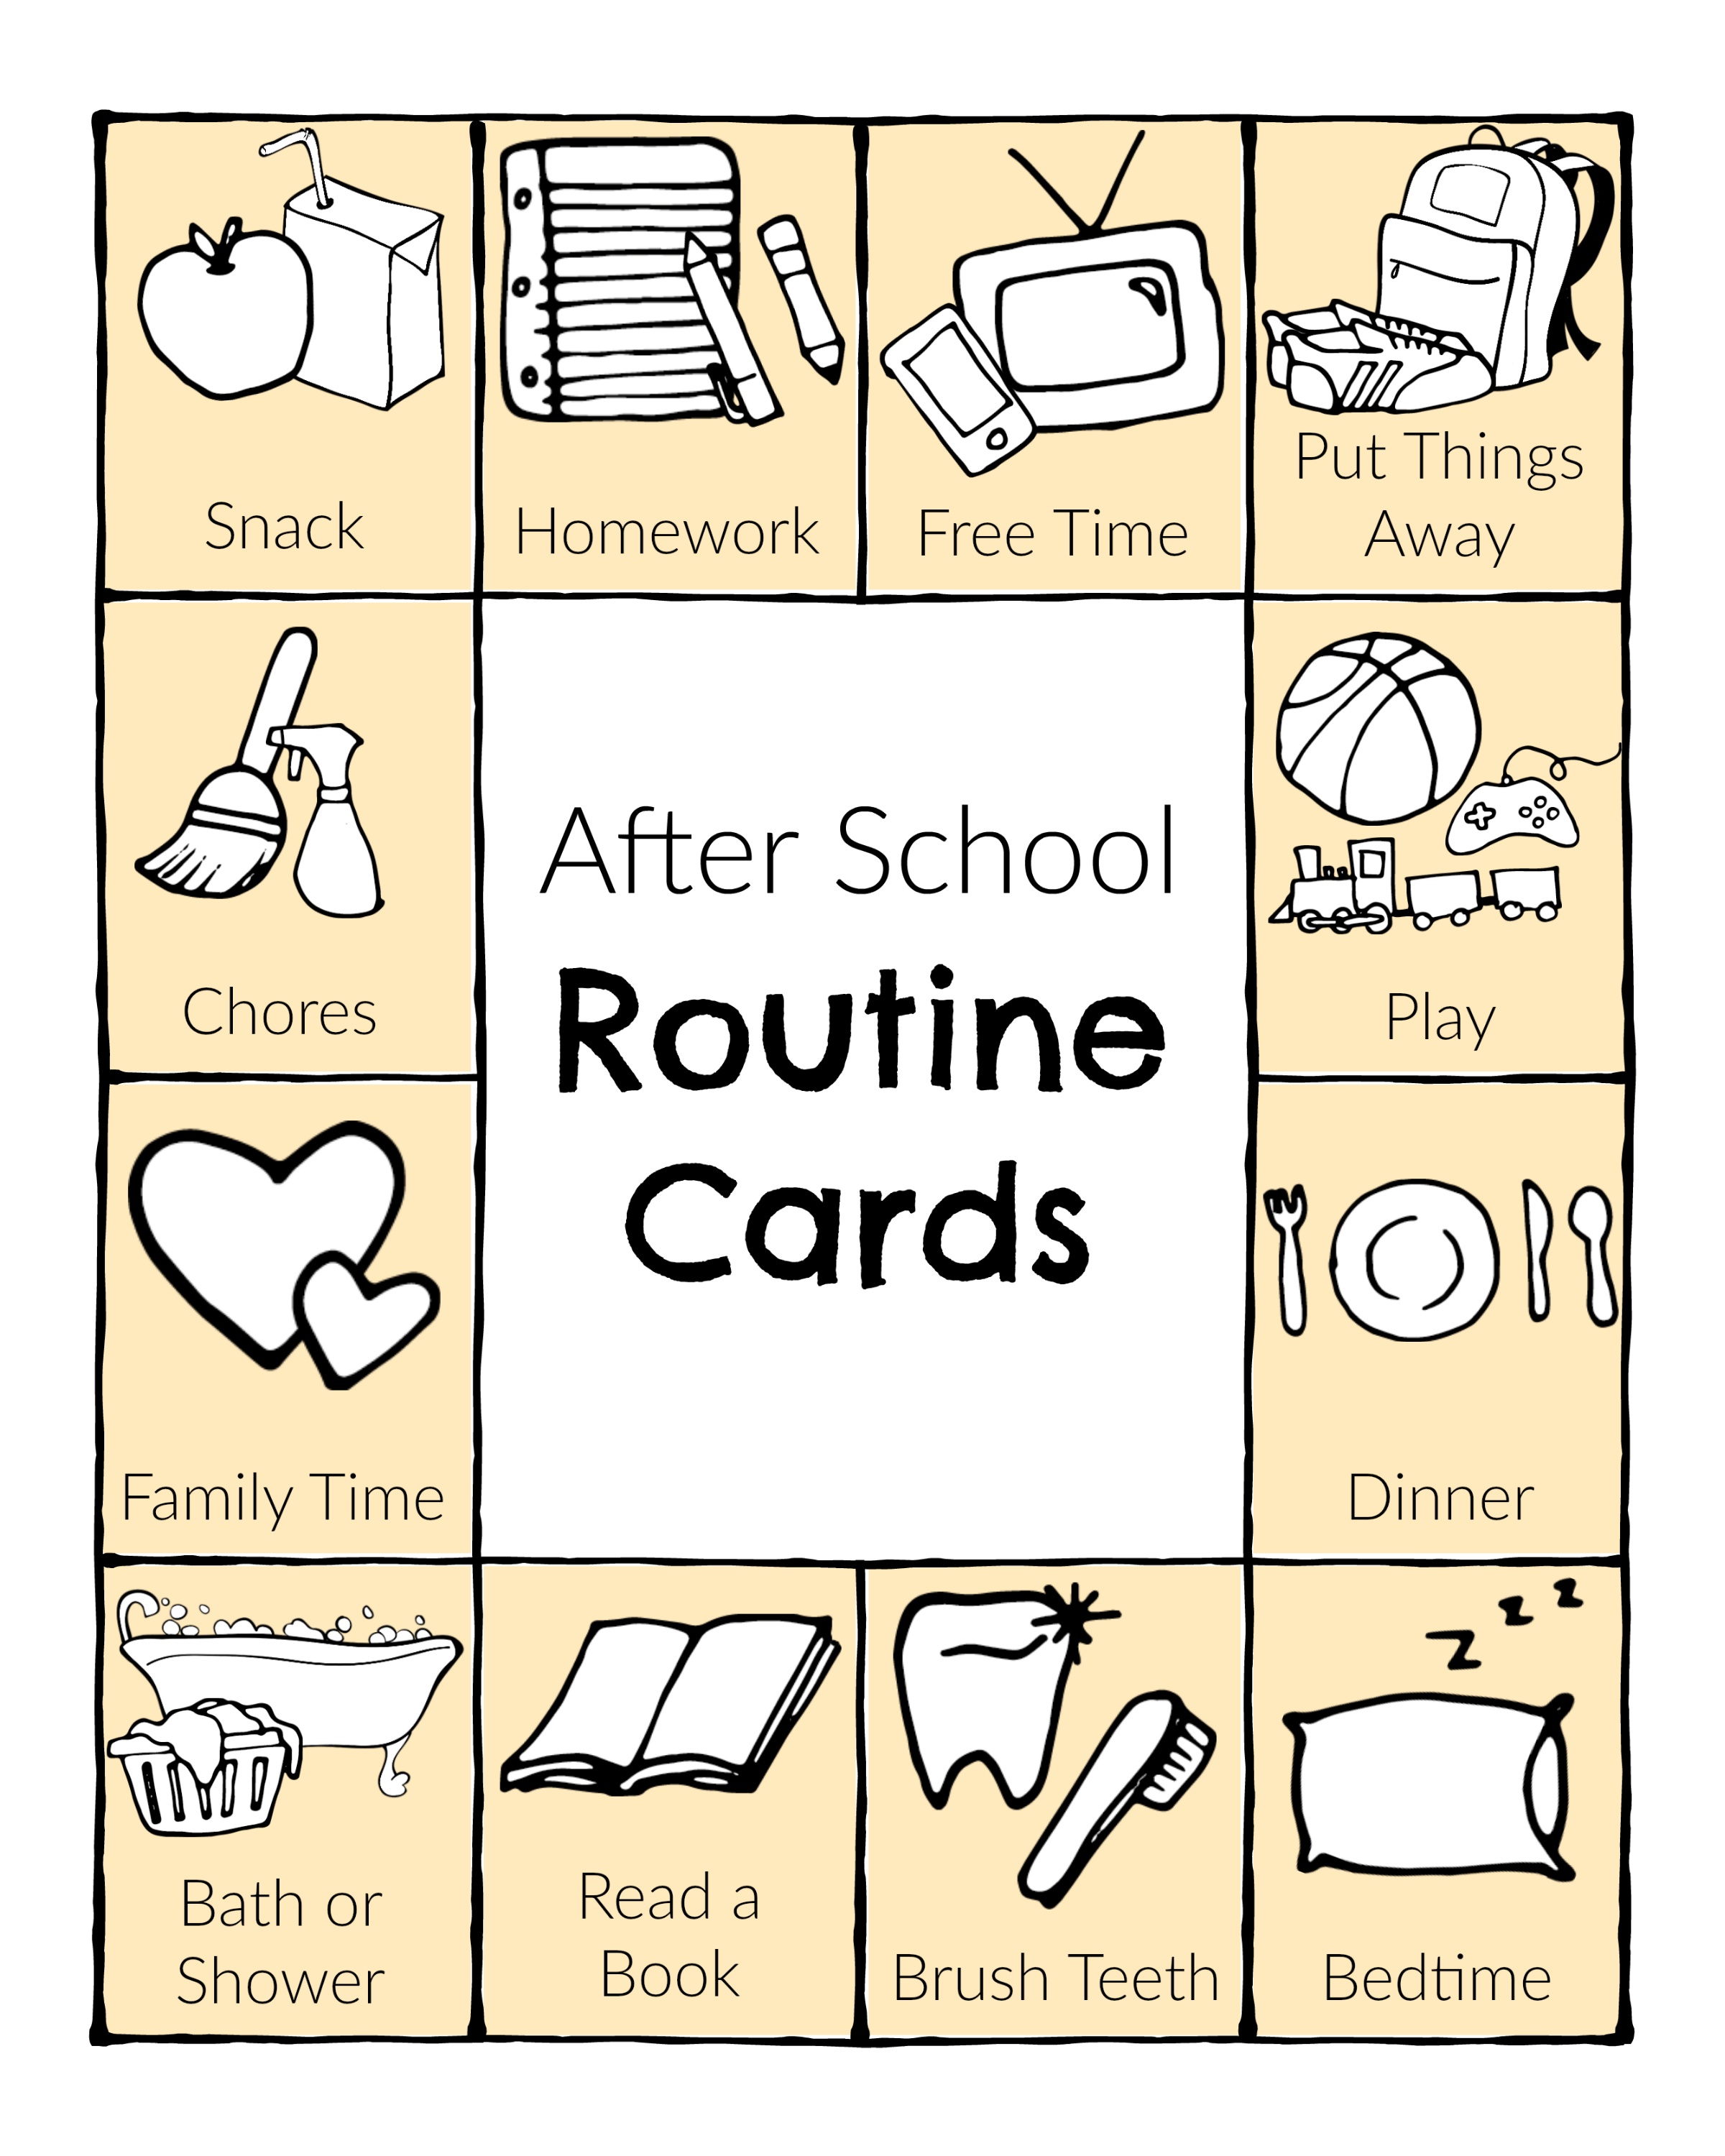 After School Routine Cards Printable